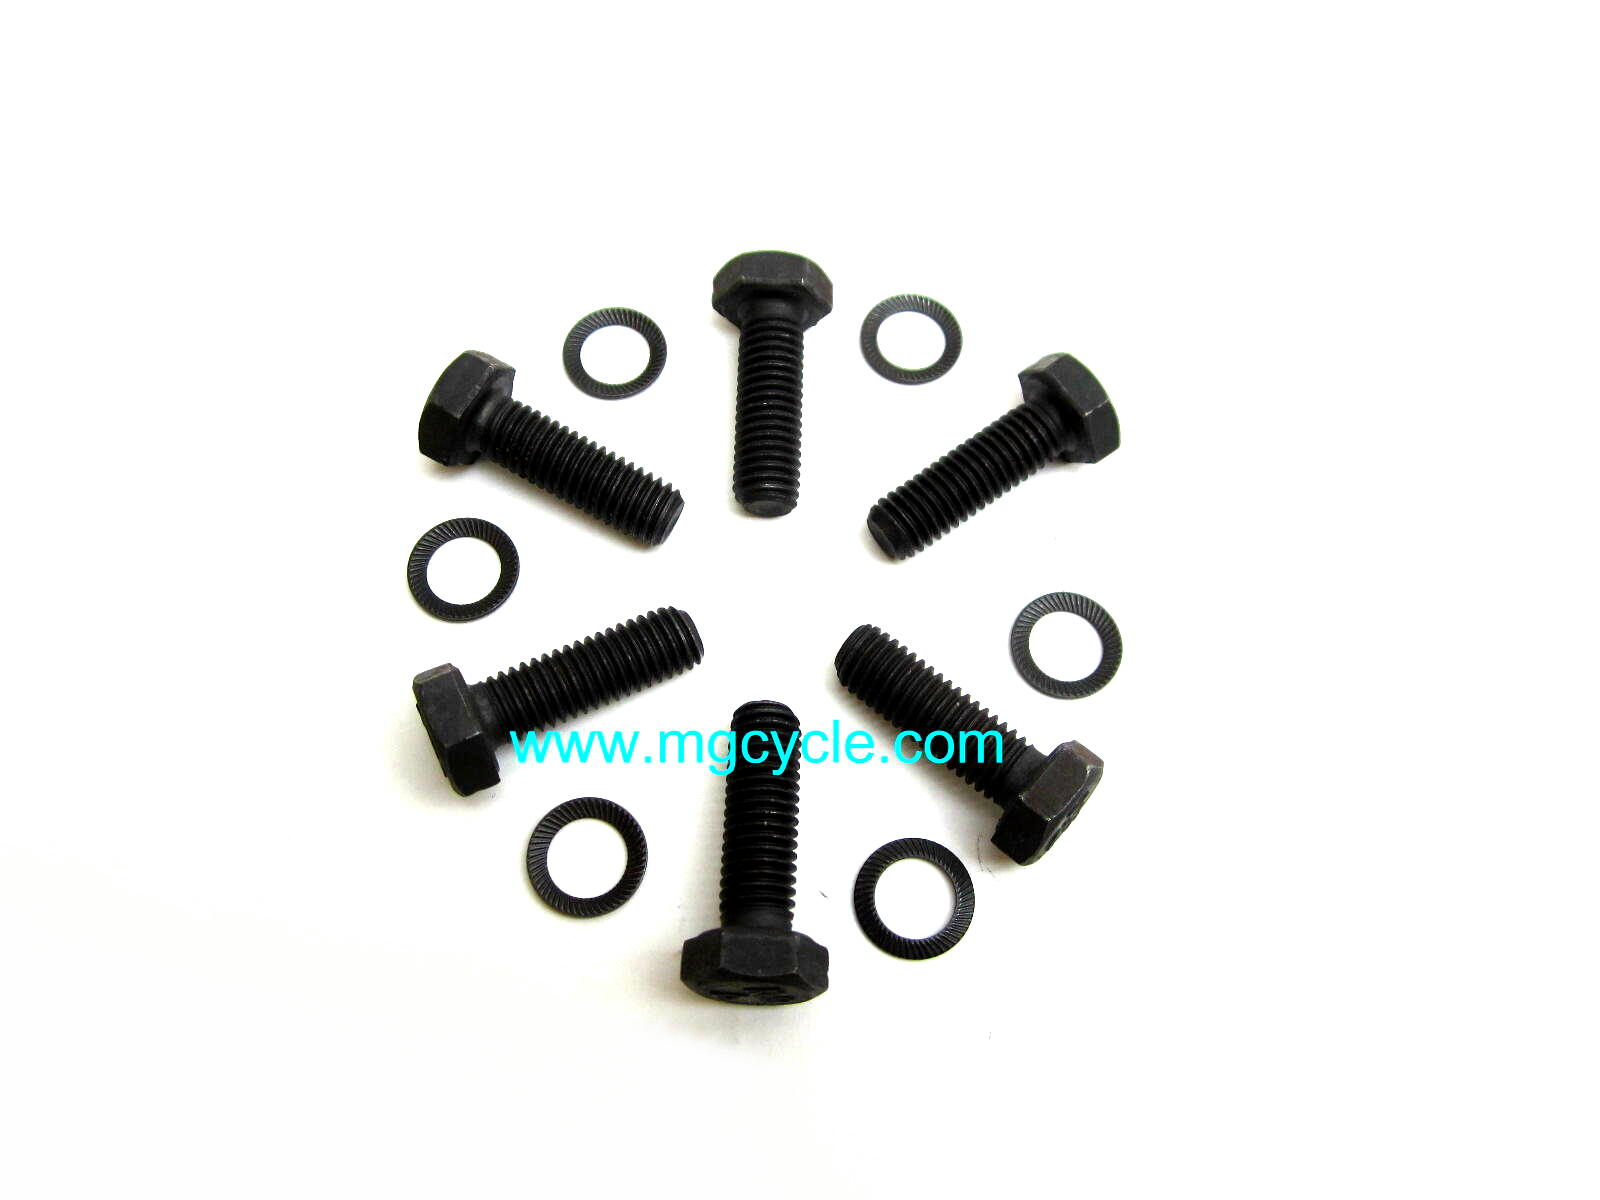 Flywheel bolt kit, 10.9 bolts with schnor lock washers - Click Image to Close